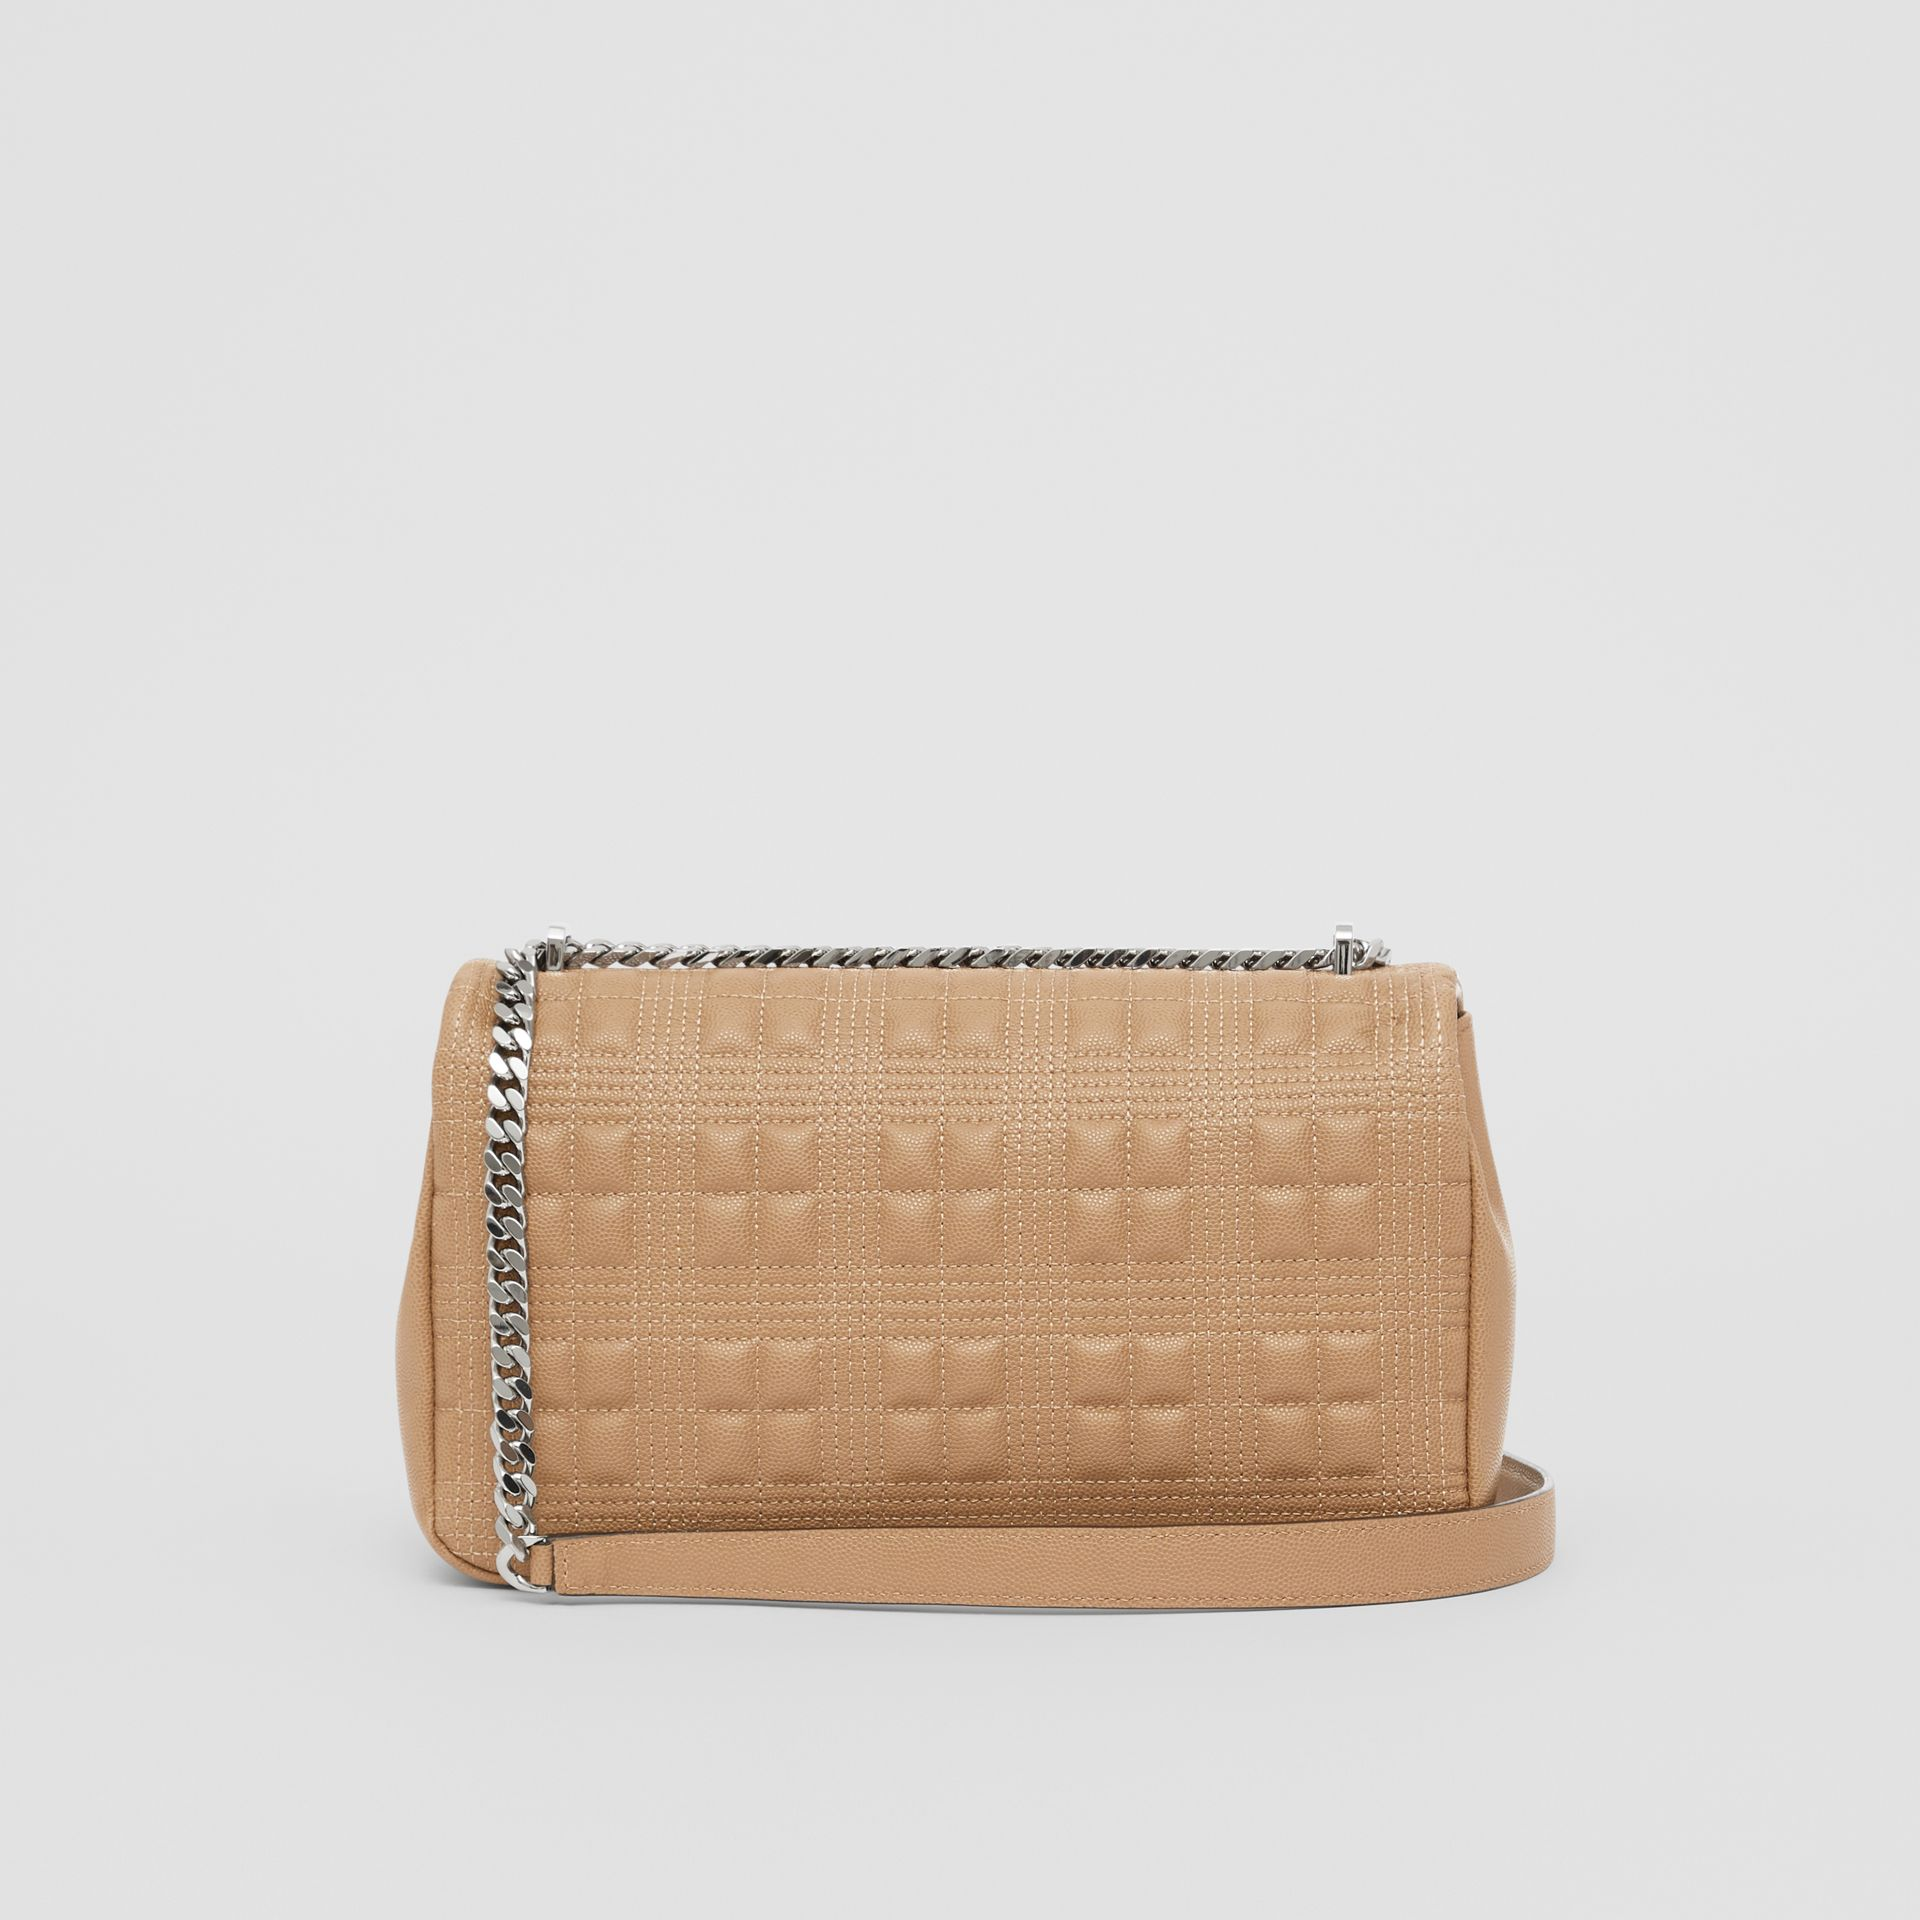 Medium Quilted Grainy Leather Lola Bag in Camel - Women | Burberry - gallery image 5